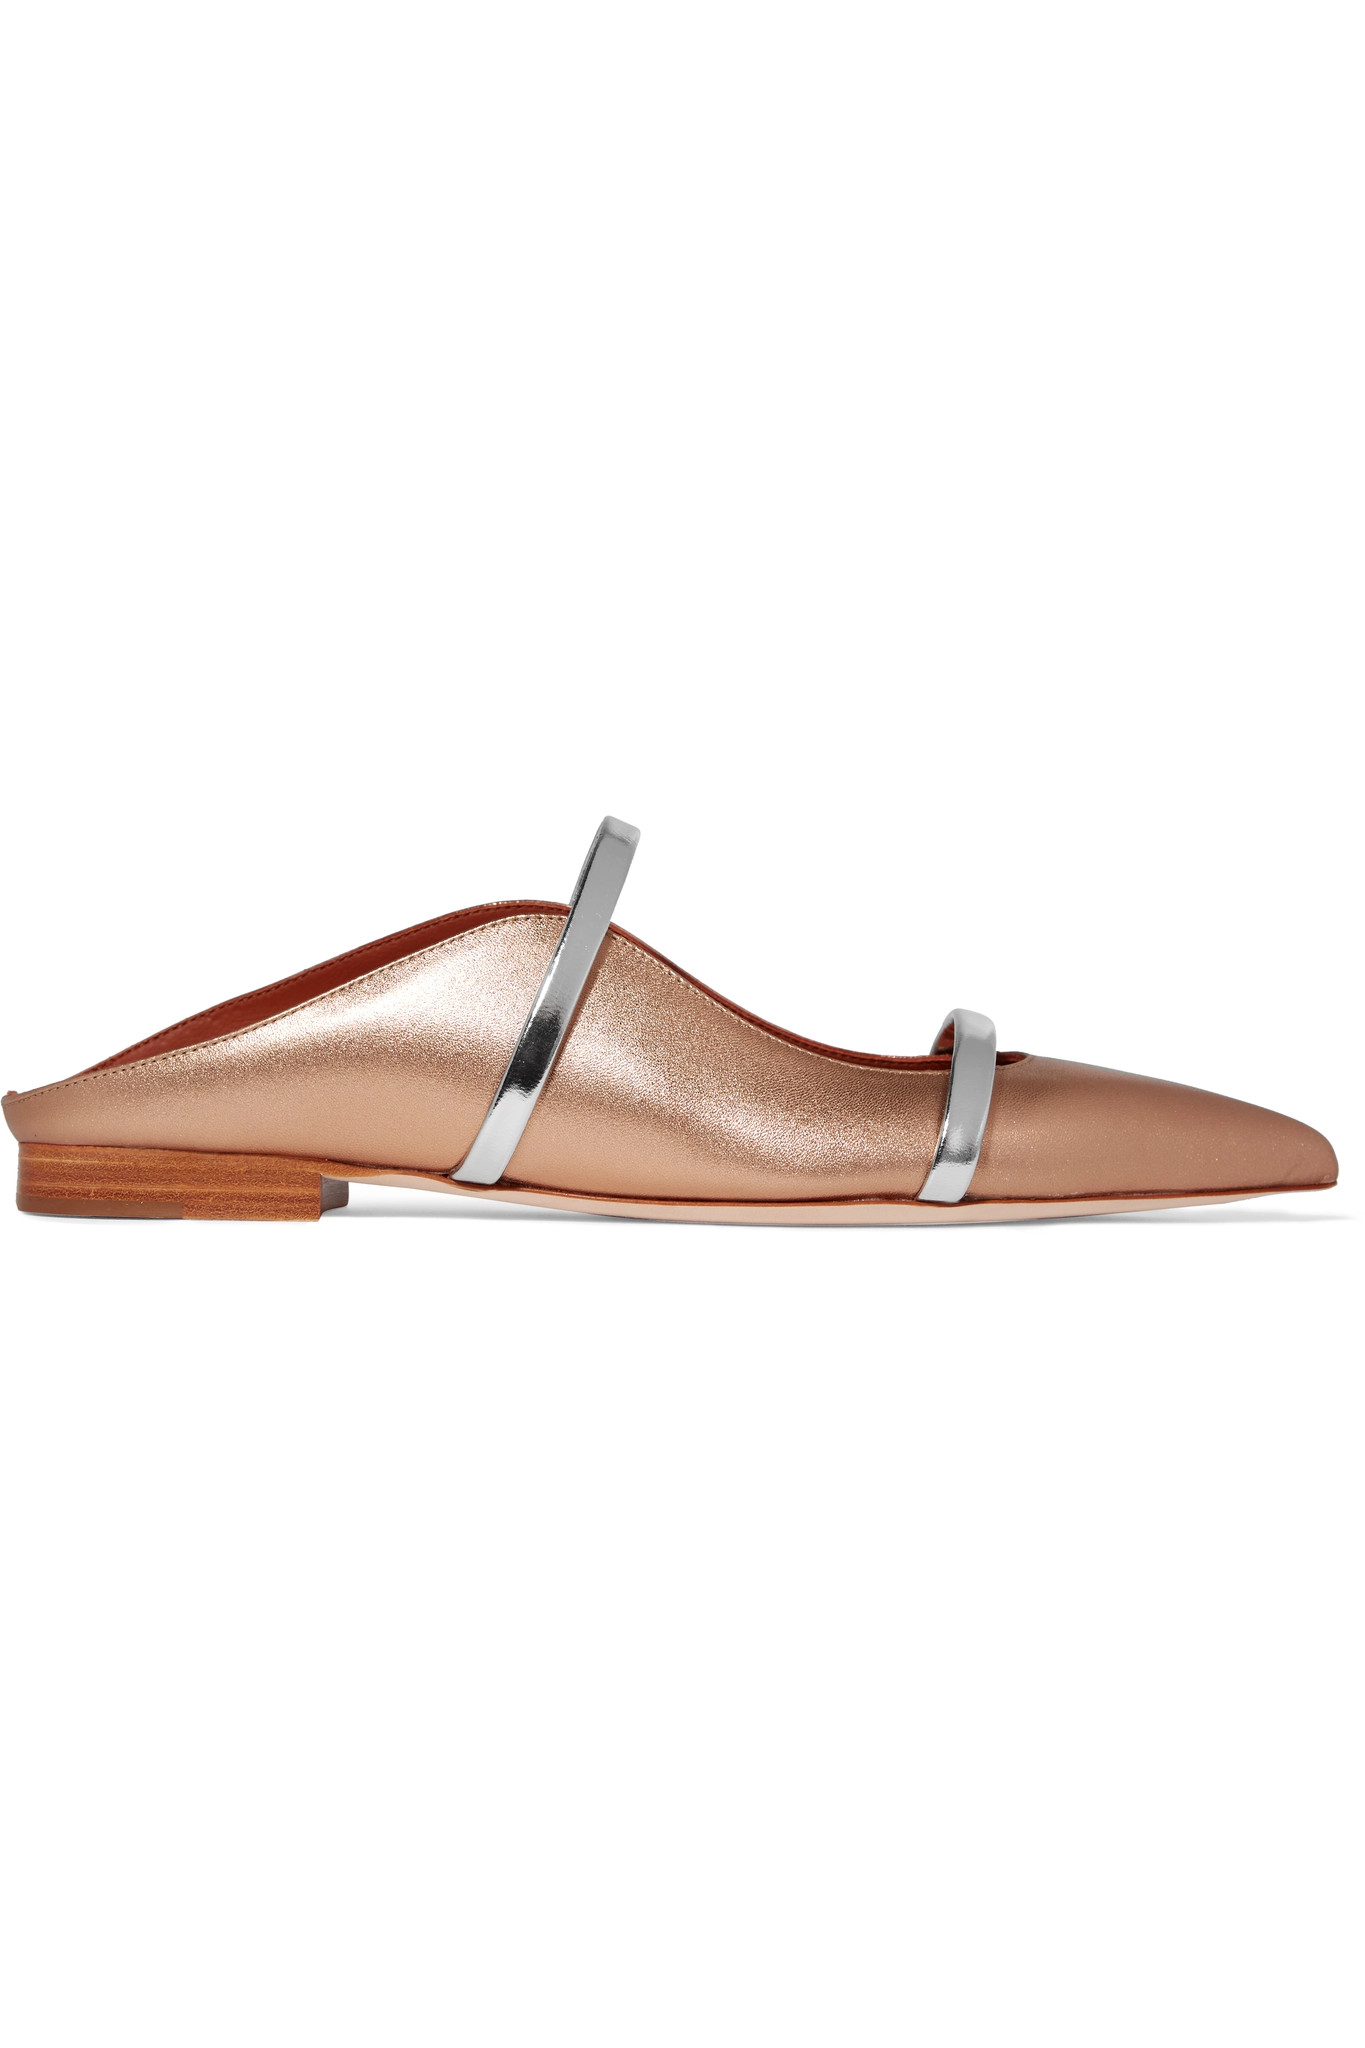 MALONE SOULIERS - Maureen Metallic Leather Point-toe Flats - Gold - IT37